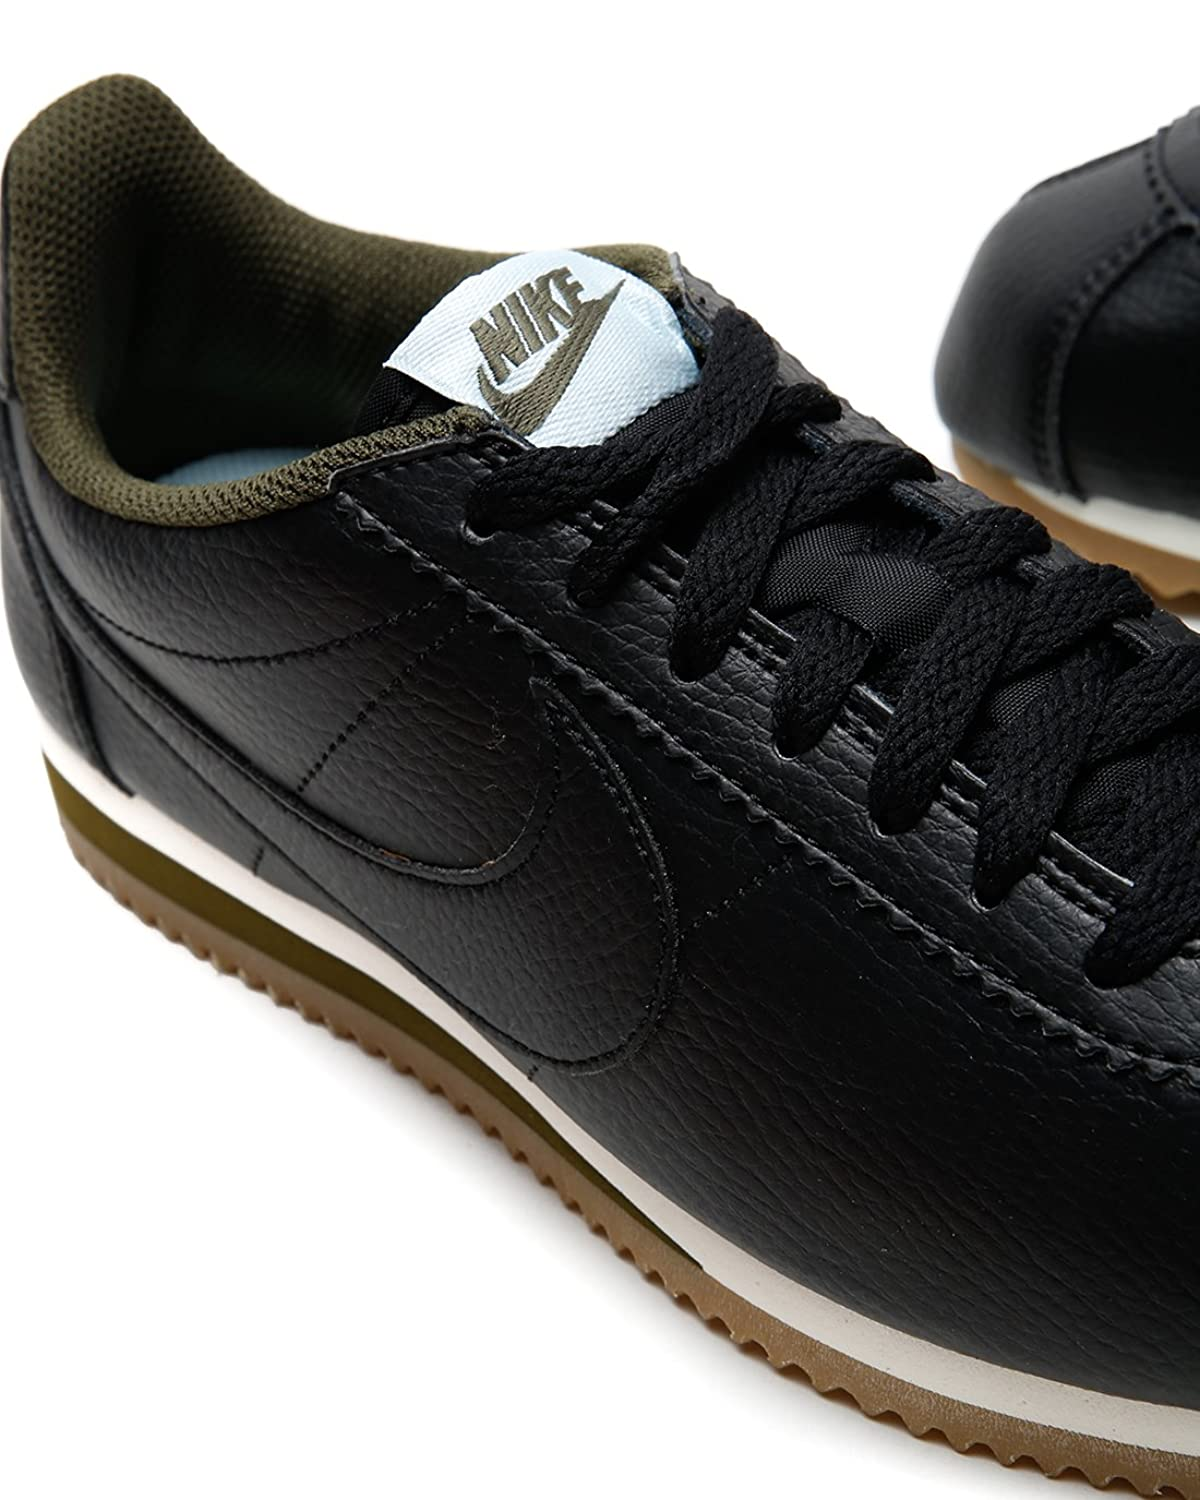 Womens NIKE CLASSIC CORTEZ LEATHER Black Trainers 807471 005: Amazon.co.uk:  Shoes & Bags